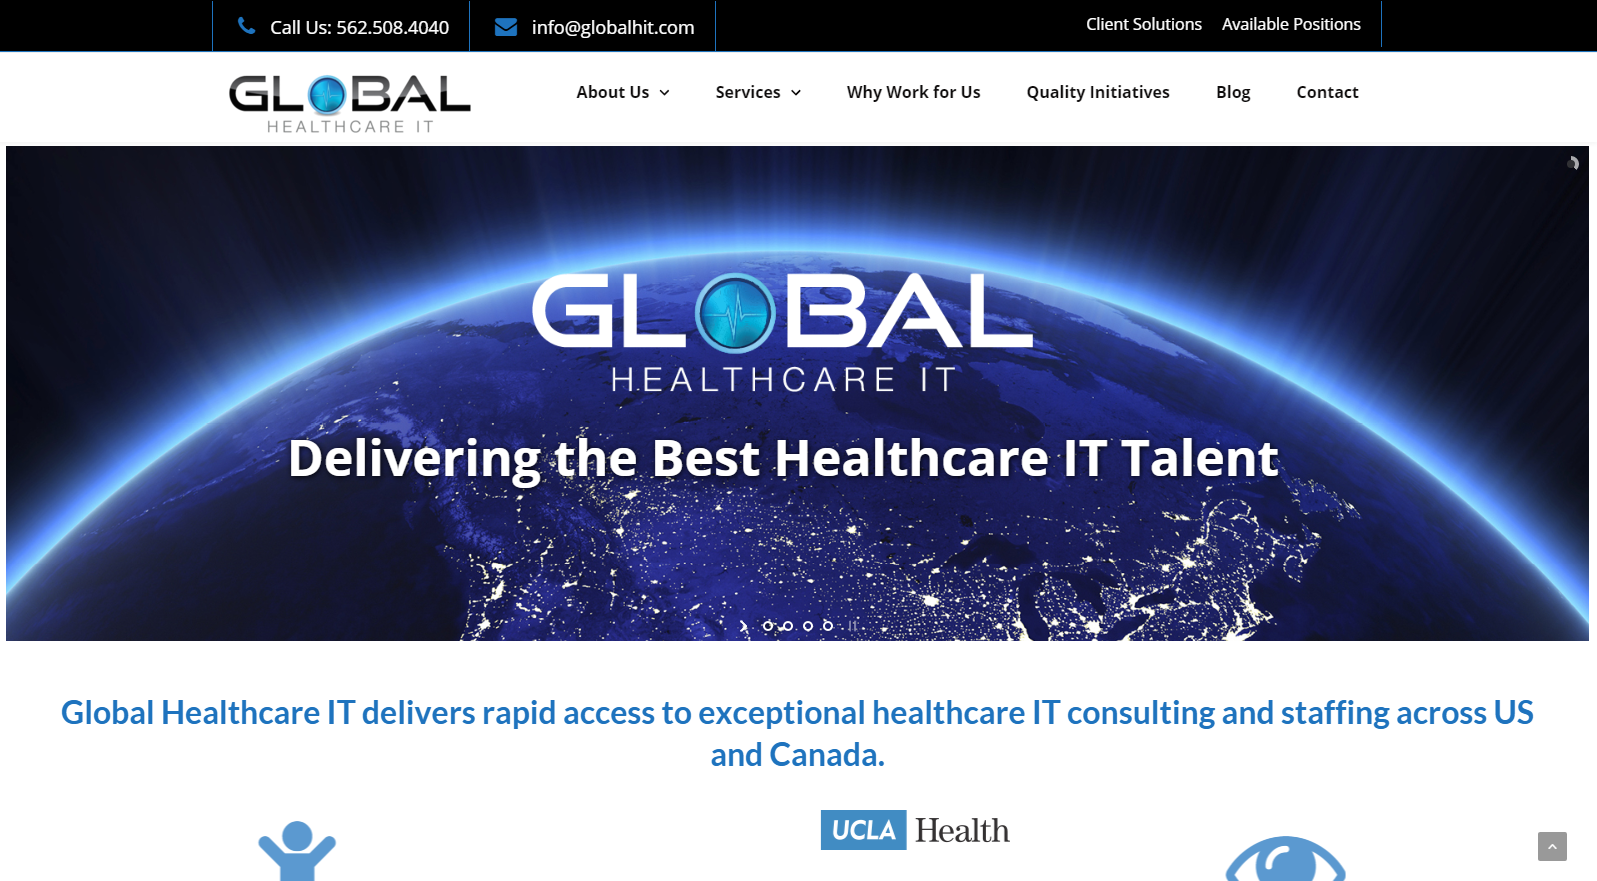 Global Healthcare IT